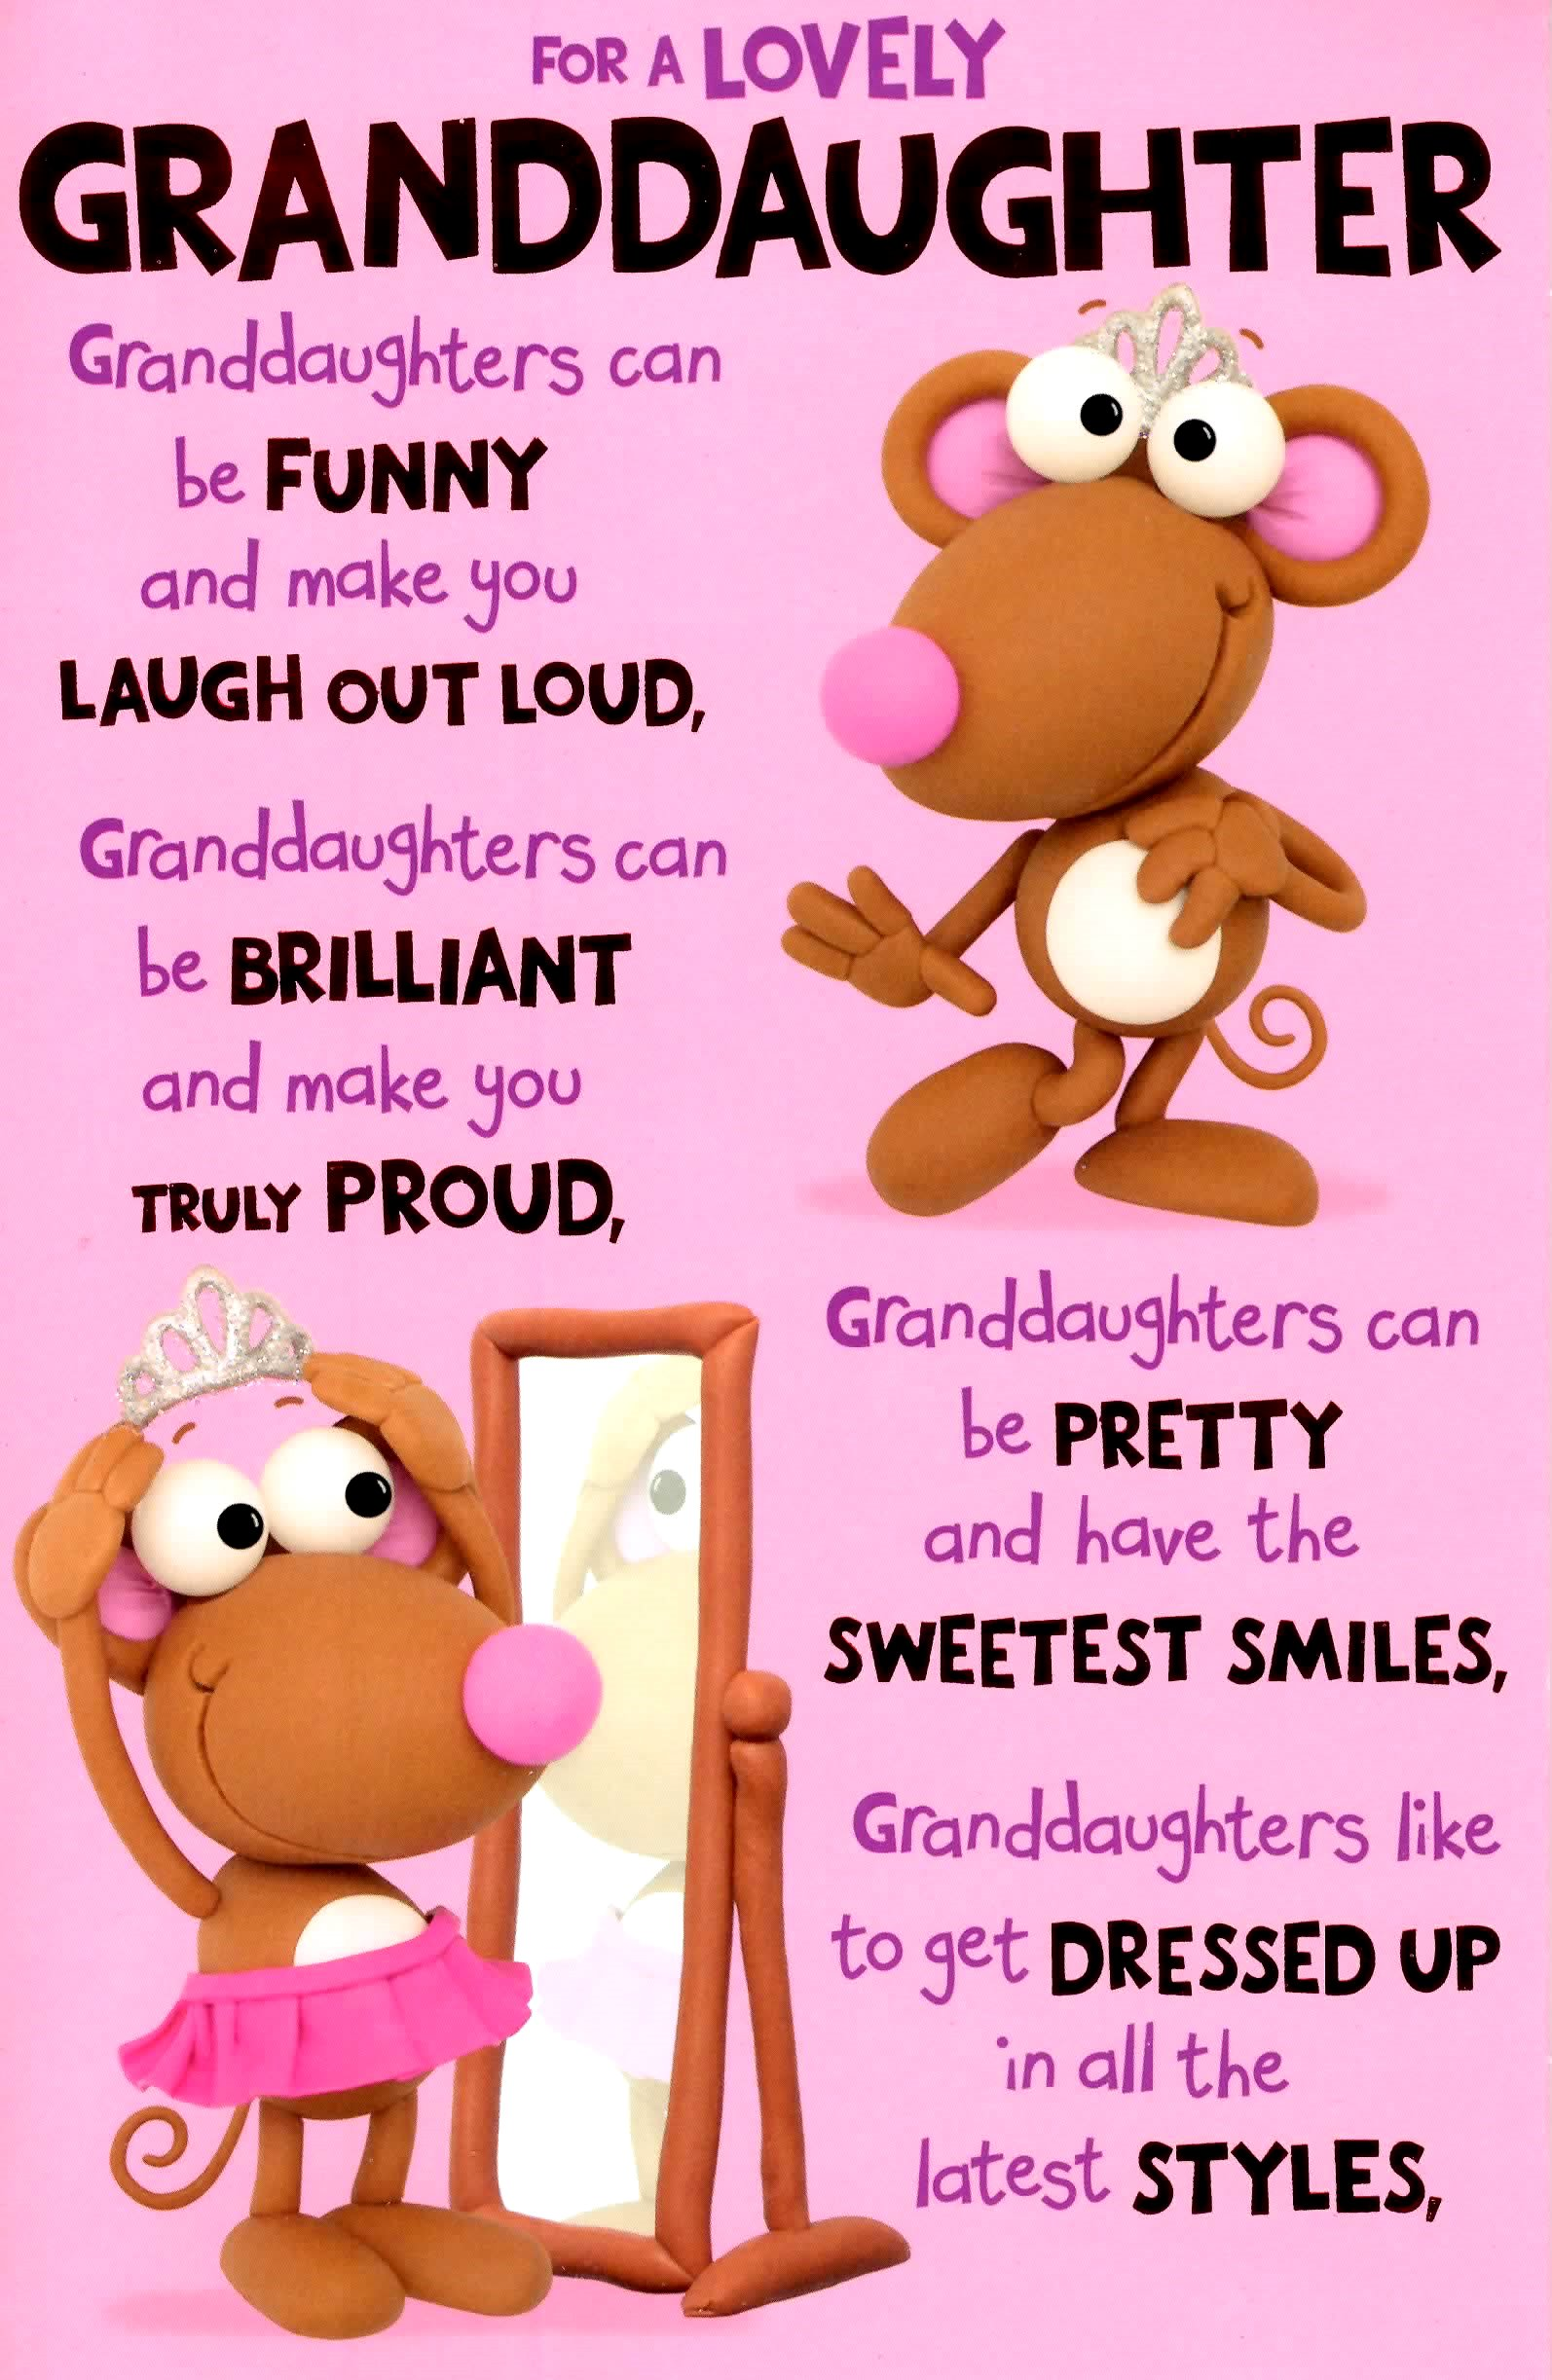 Sentinel Cute Wonderful Granddaughter Birthday Greeting Card Crackers Range Cards New